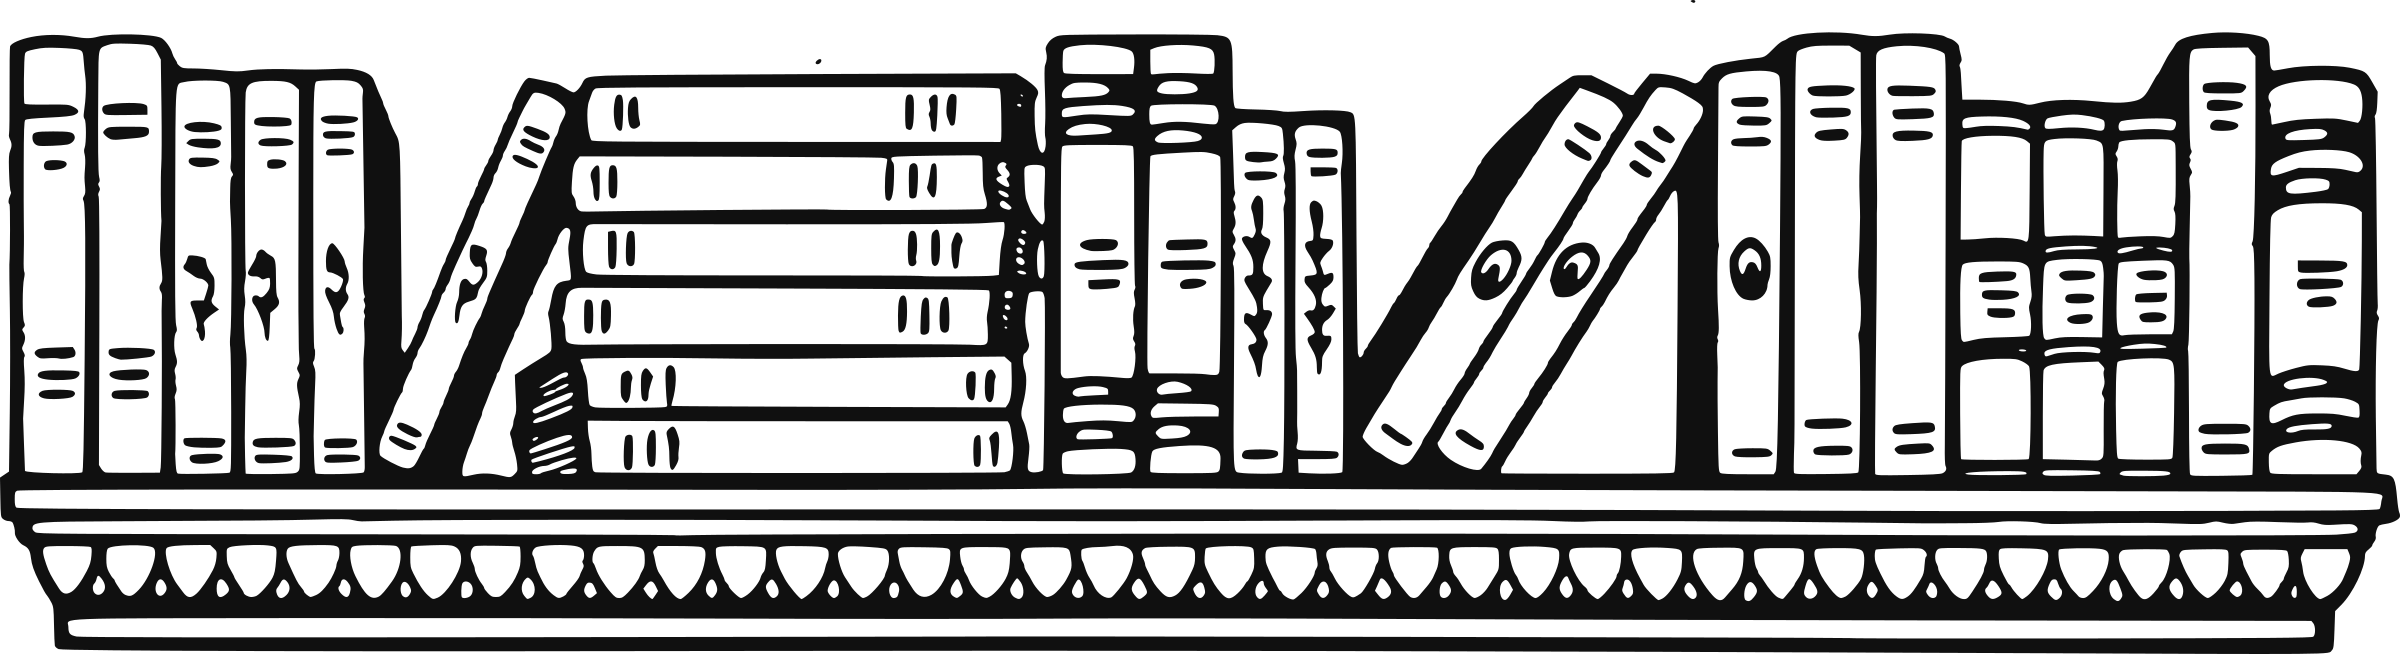 Library clipart black and white.  collection of book